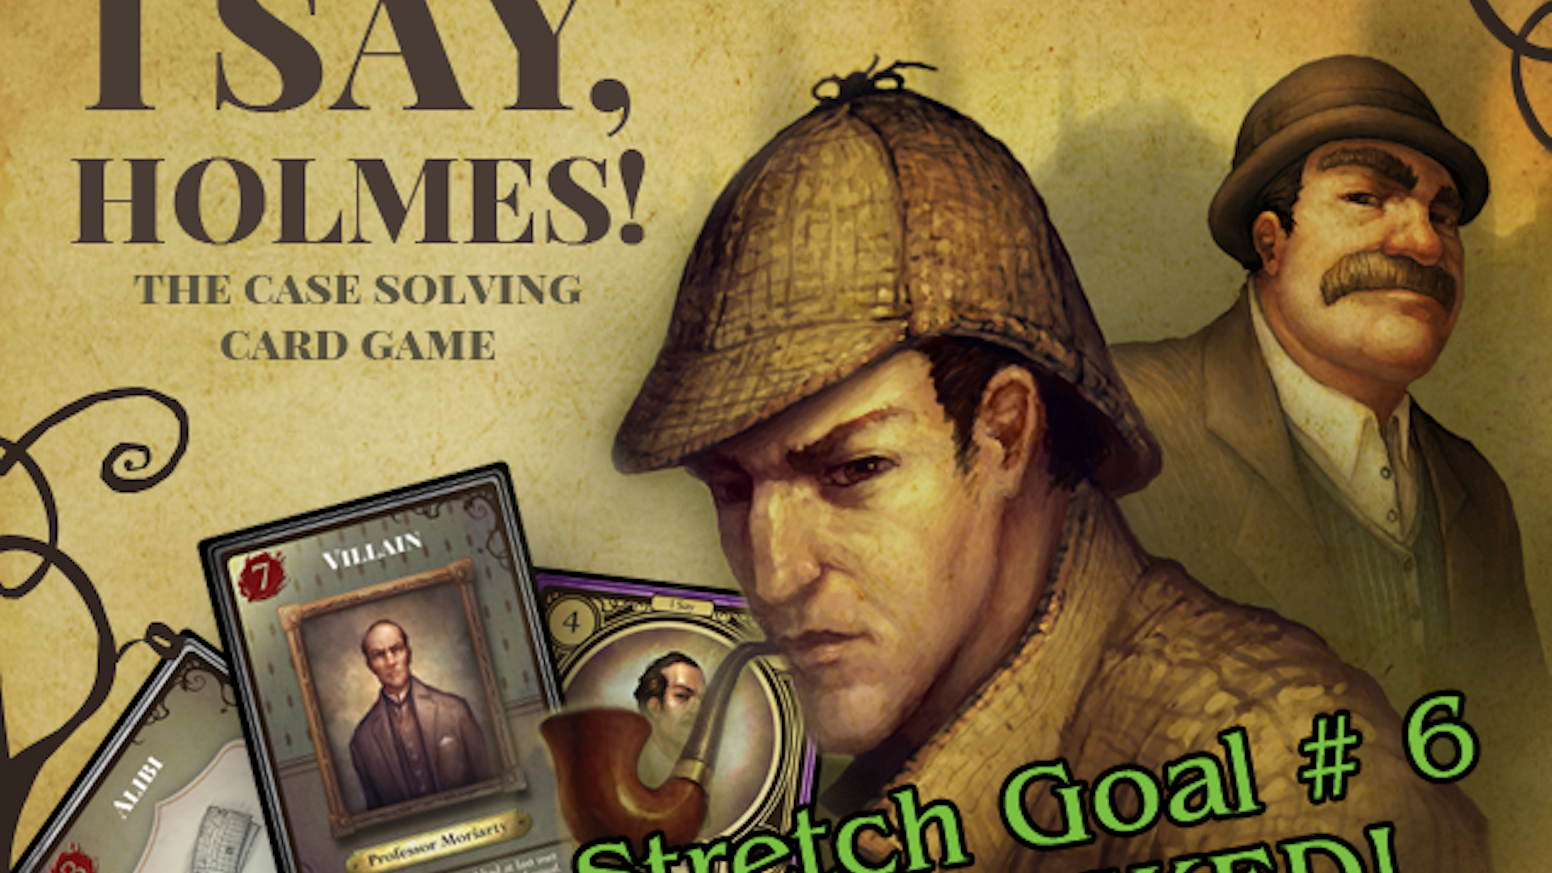 Sherlock Holmes and his companions are at your disposal as you try to catch the most notorious villains of Victorian era London.